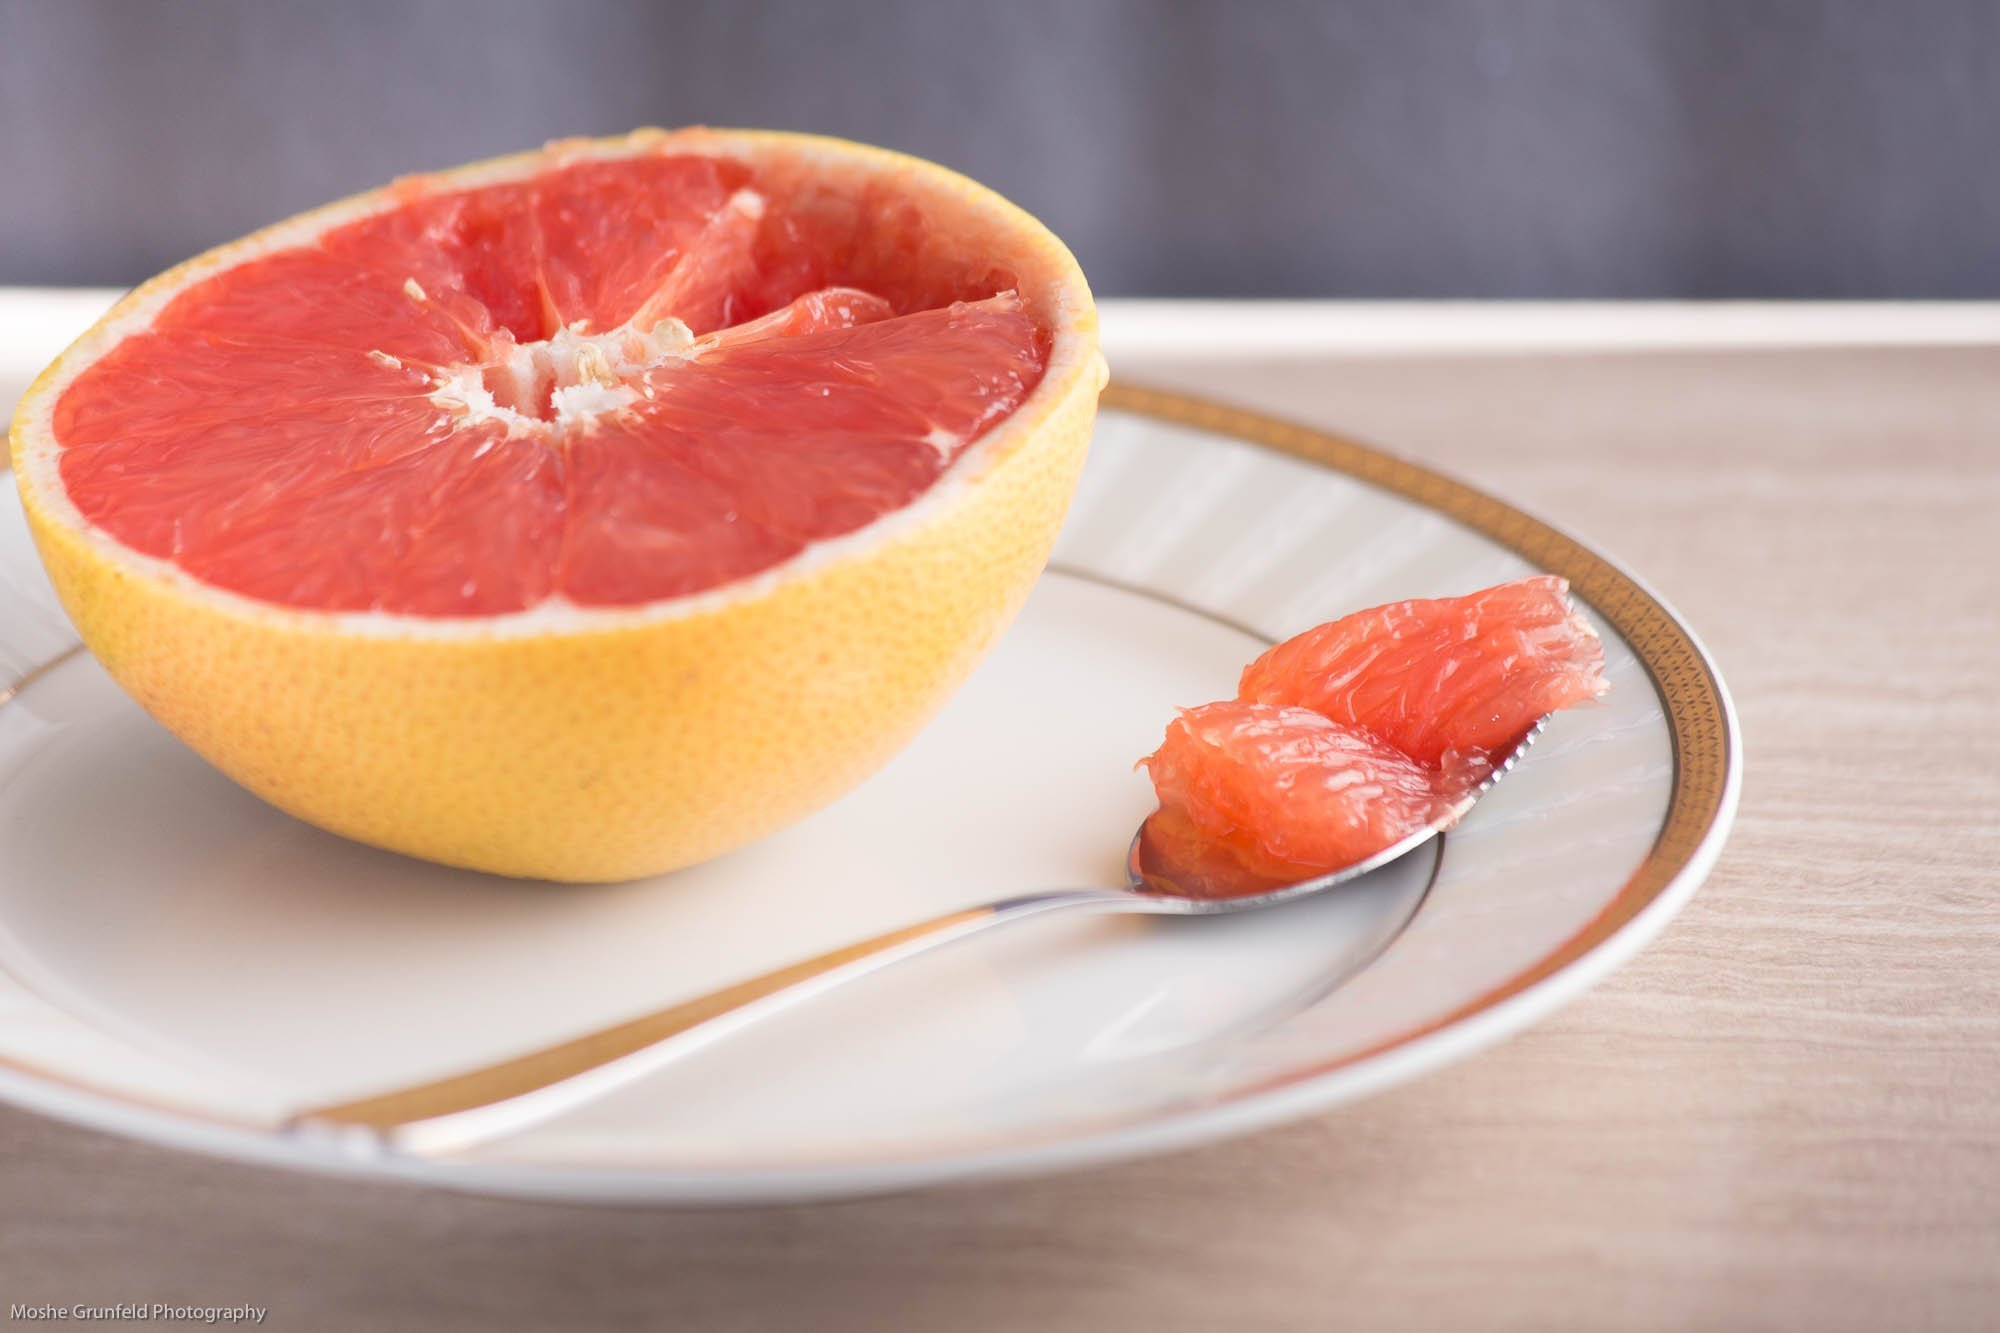 ChefLand Stainless Steel Thick Grapefruit Spoon, Dessert Spoon, Serrated Edge, Set of 2 by ChefLand